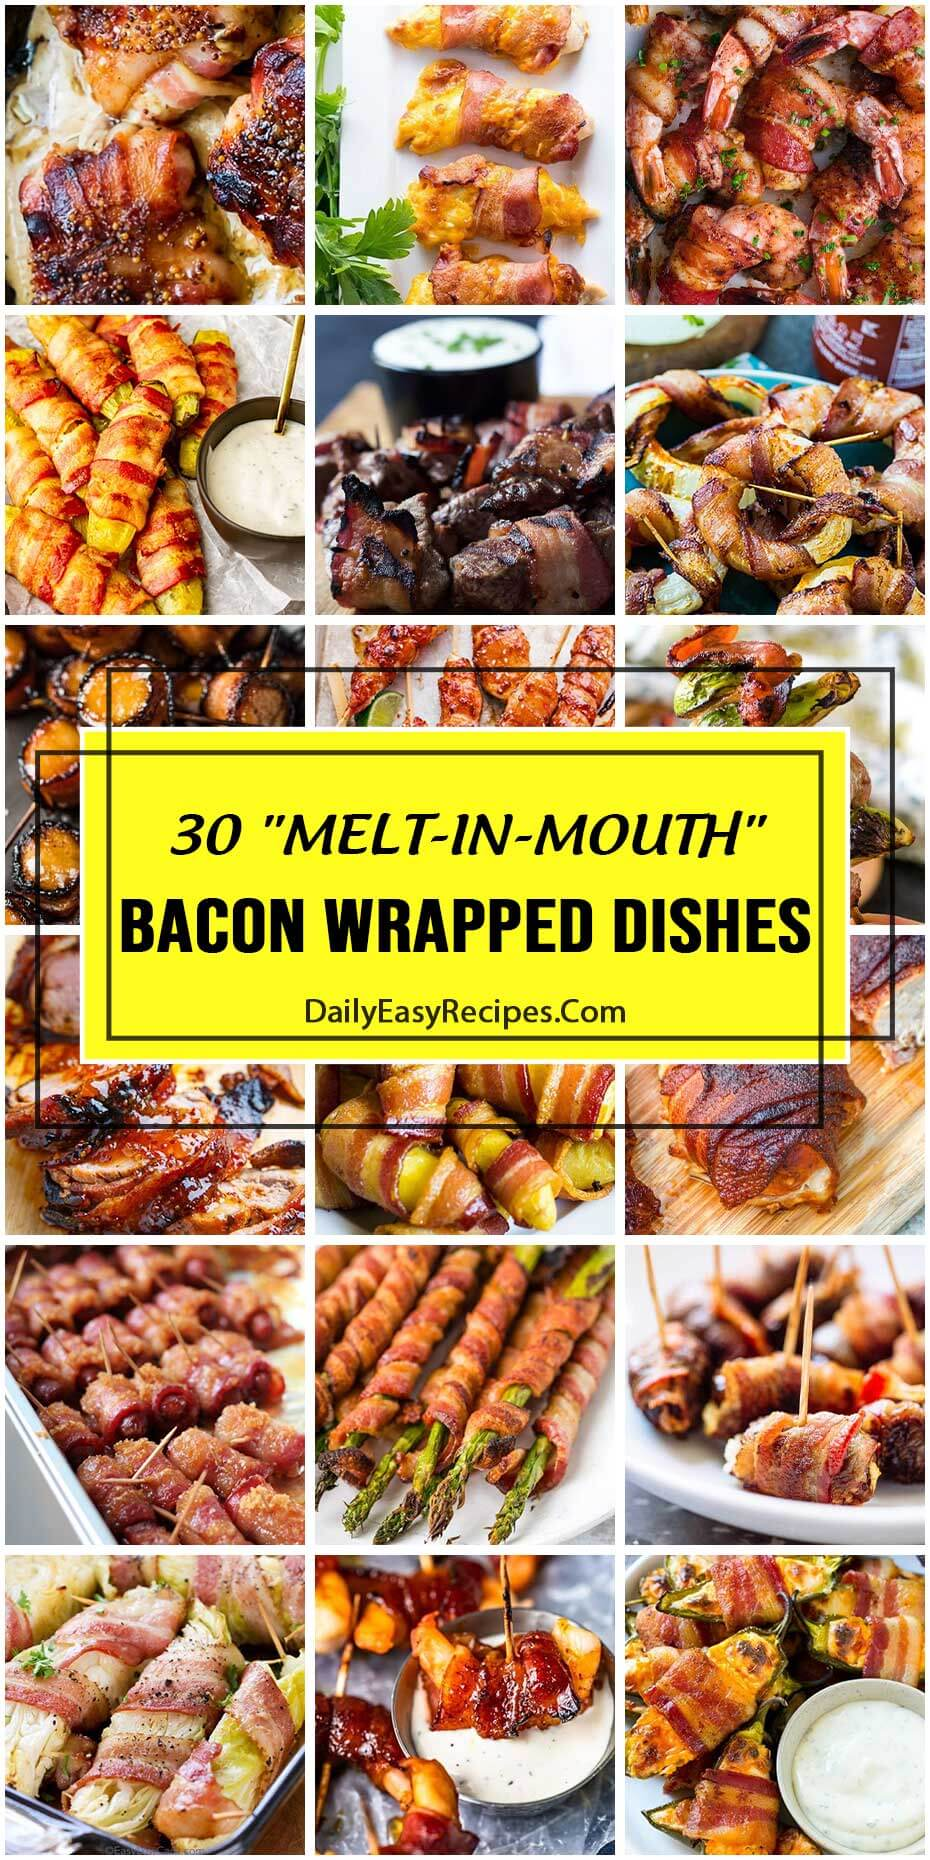 30 Bacon-Wrapped Dishes That're Gonna Melt In Your Mouth